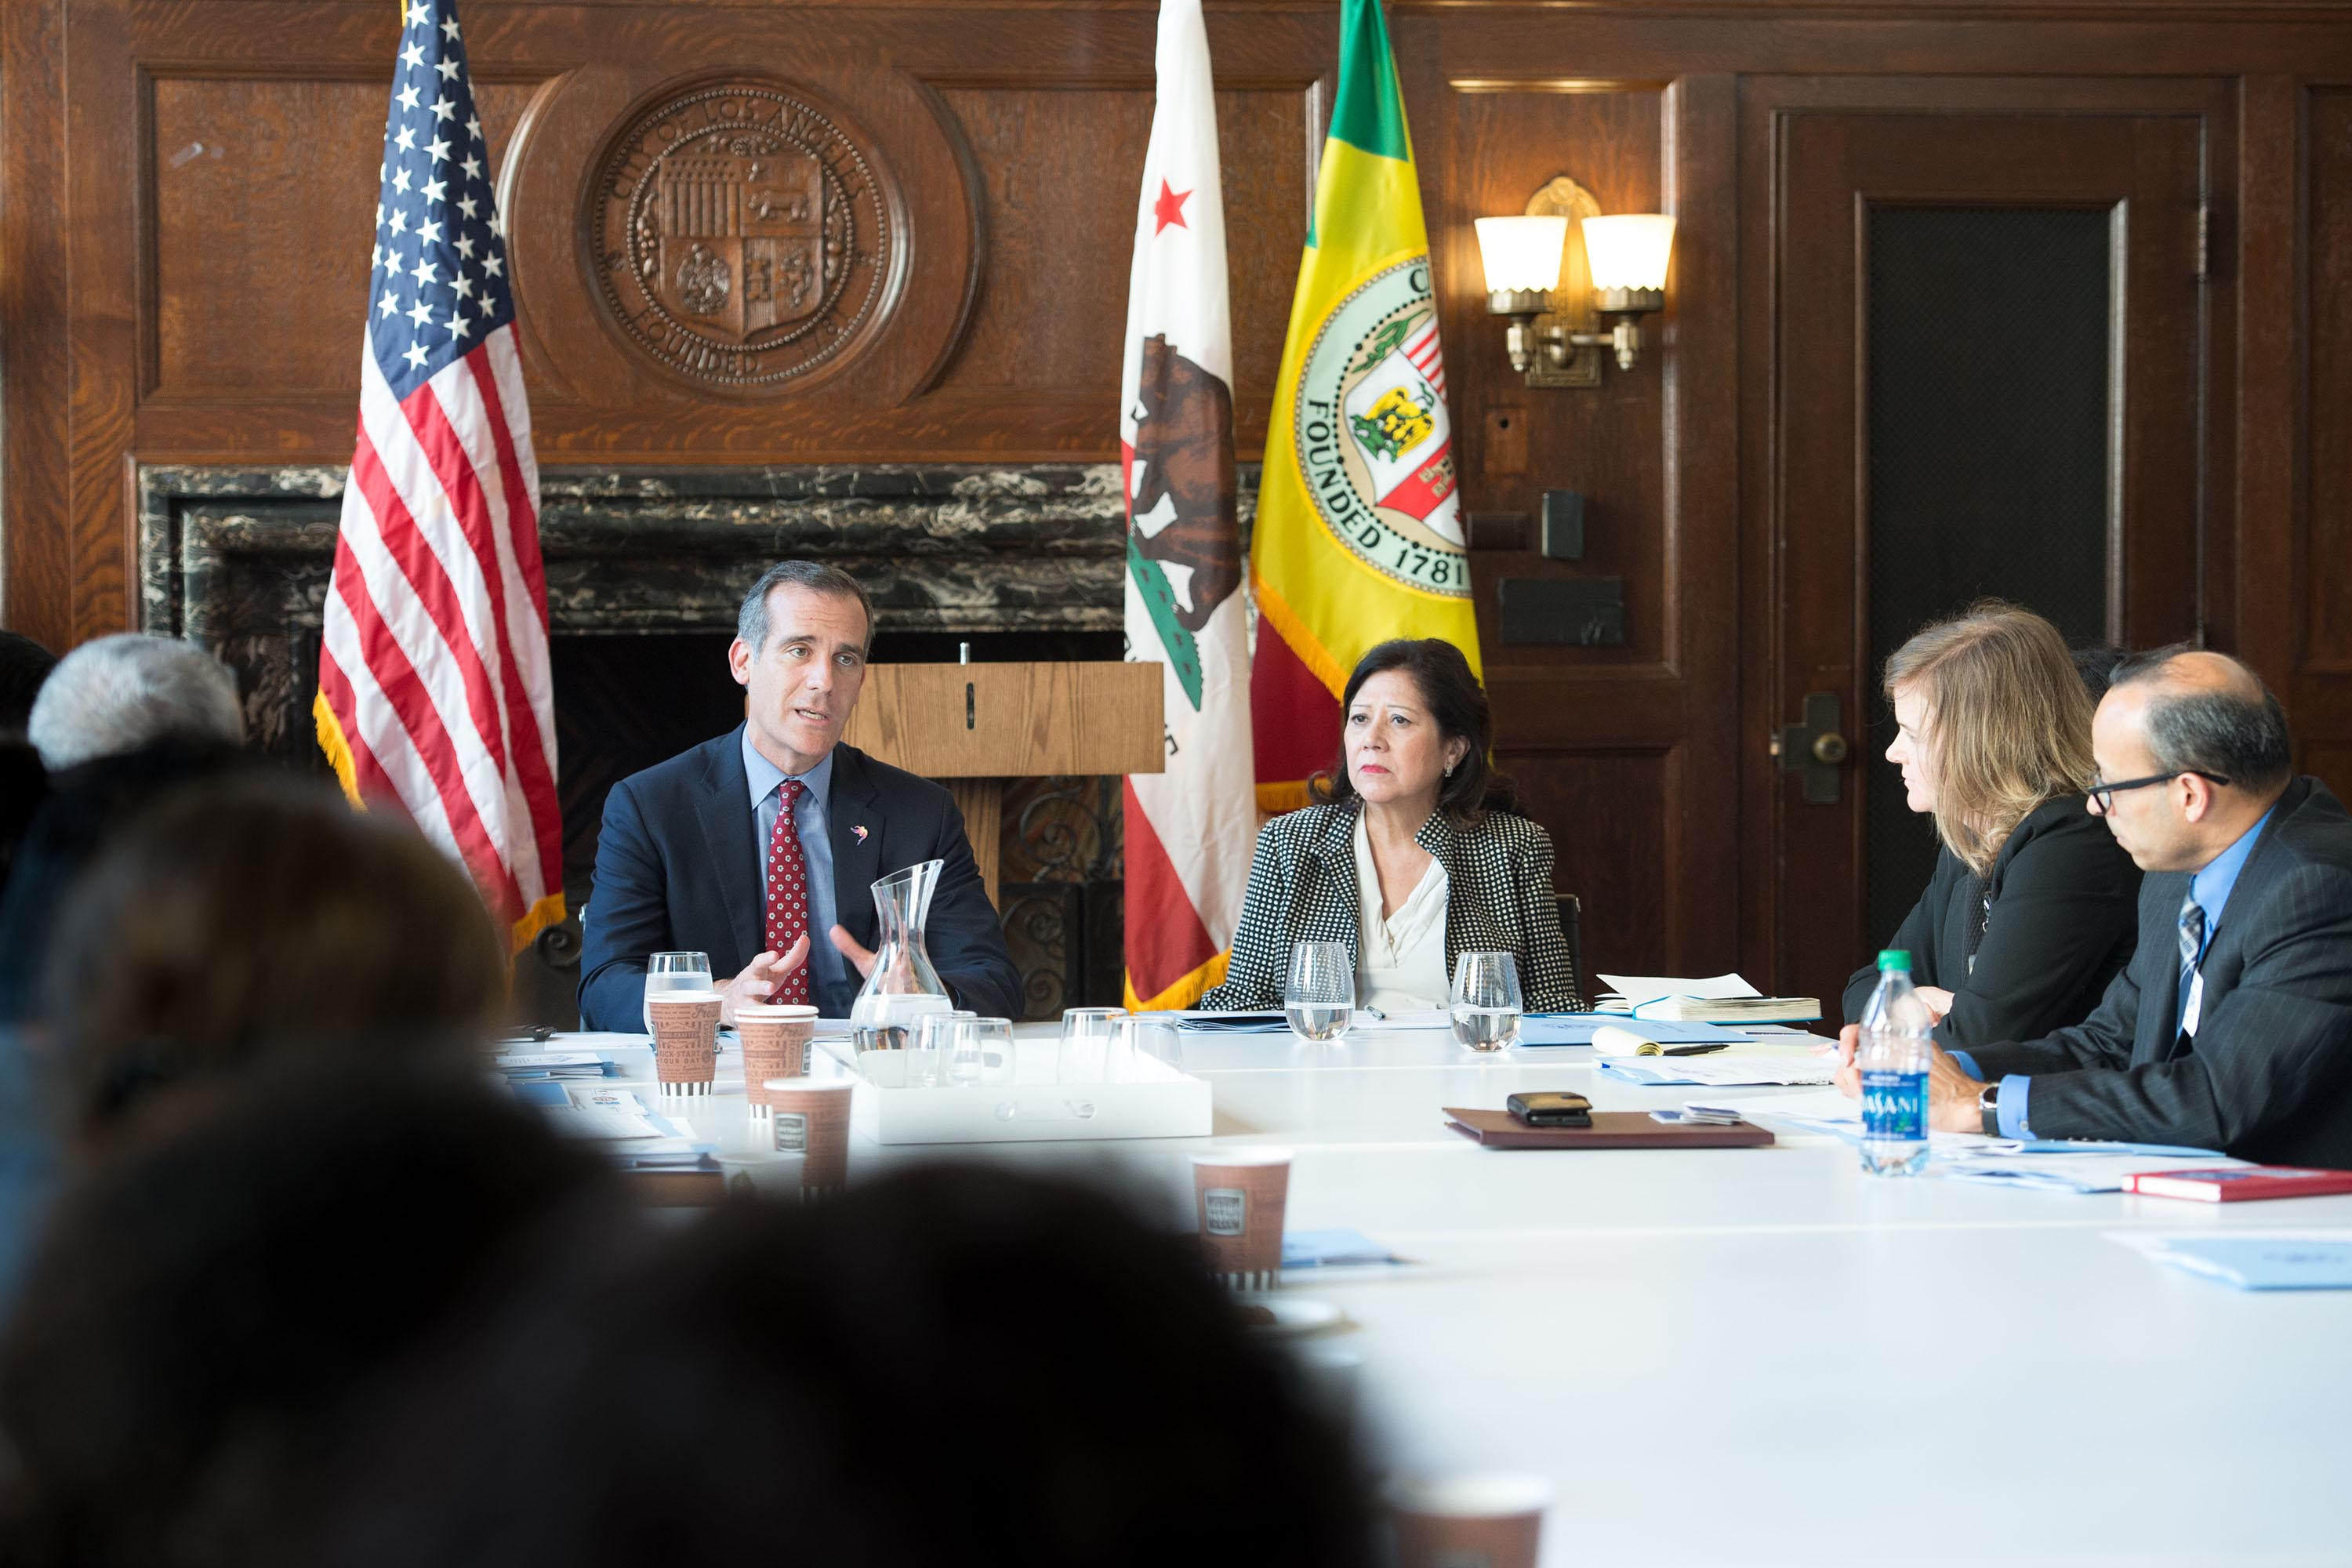 District 1 – Supervisor Hilda L. Solis<br> <b>June 28, 2018 – Roundtable Discussion on Immigration. </b><br> <i>Photo by Bryan Chan / Board of Supervisors</i>